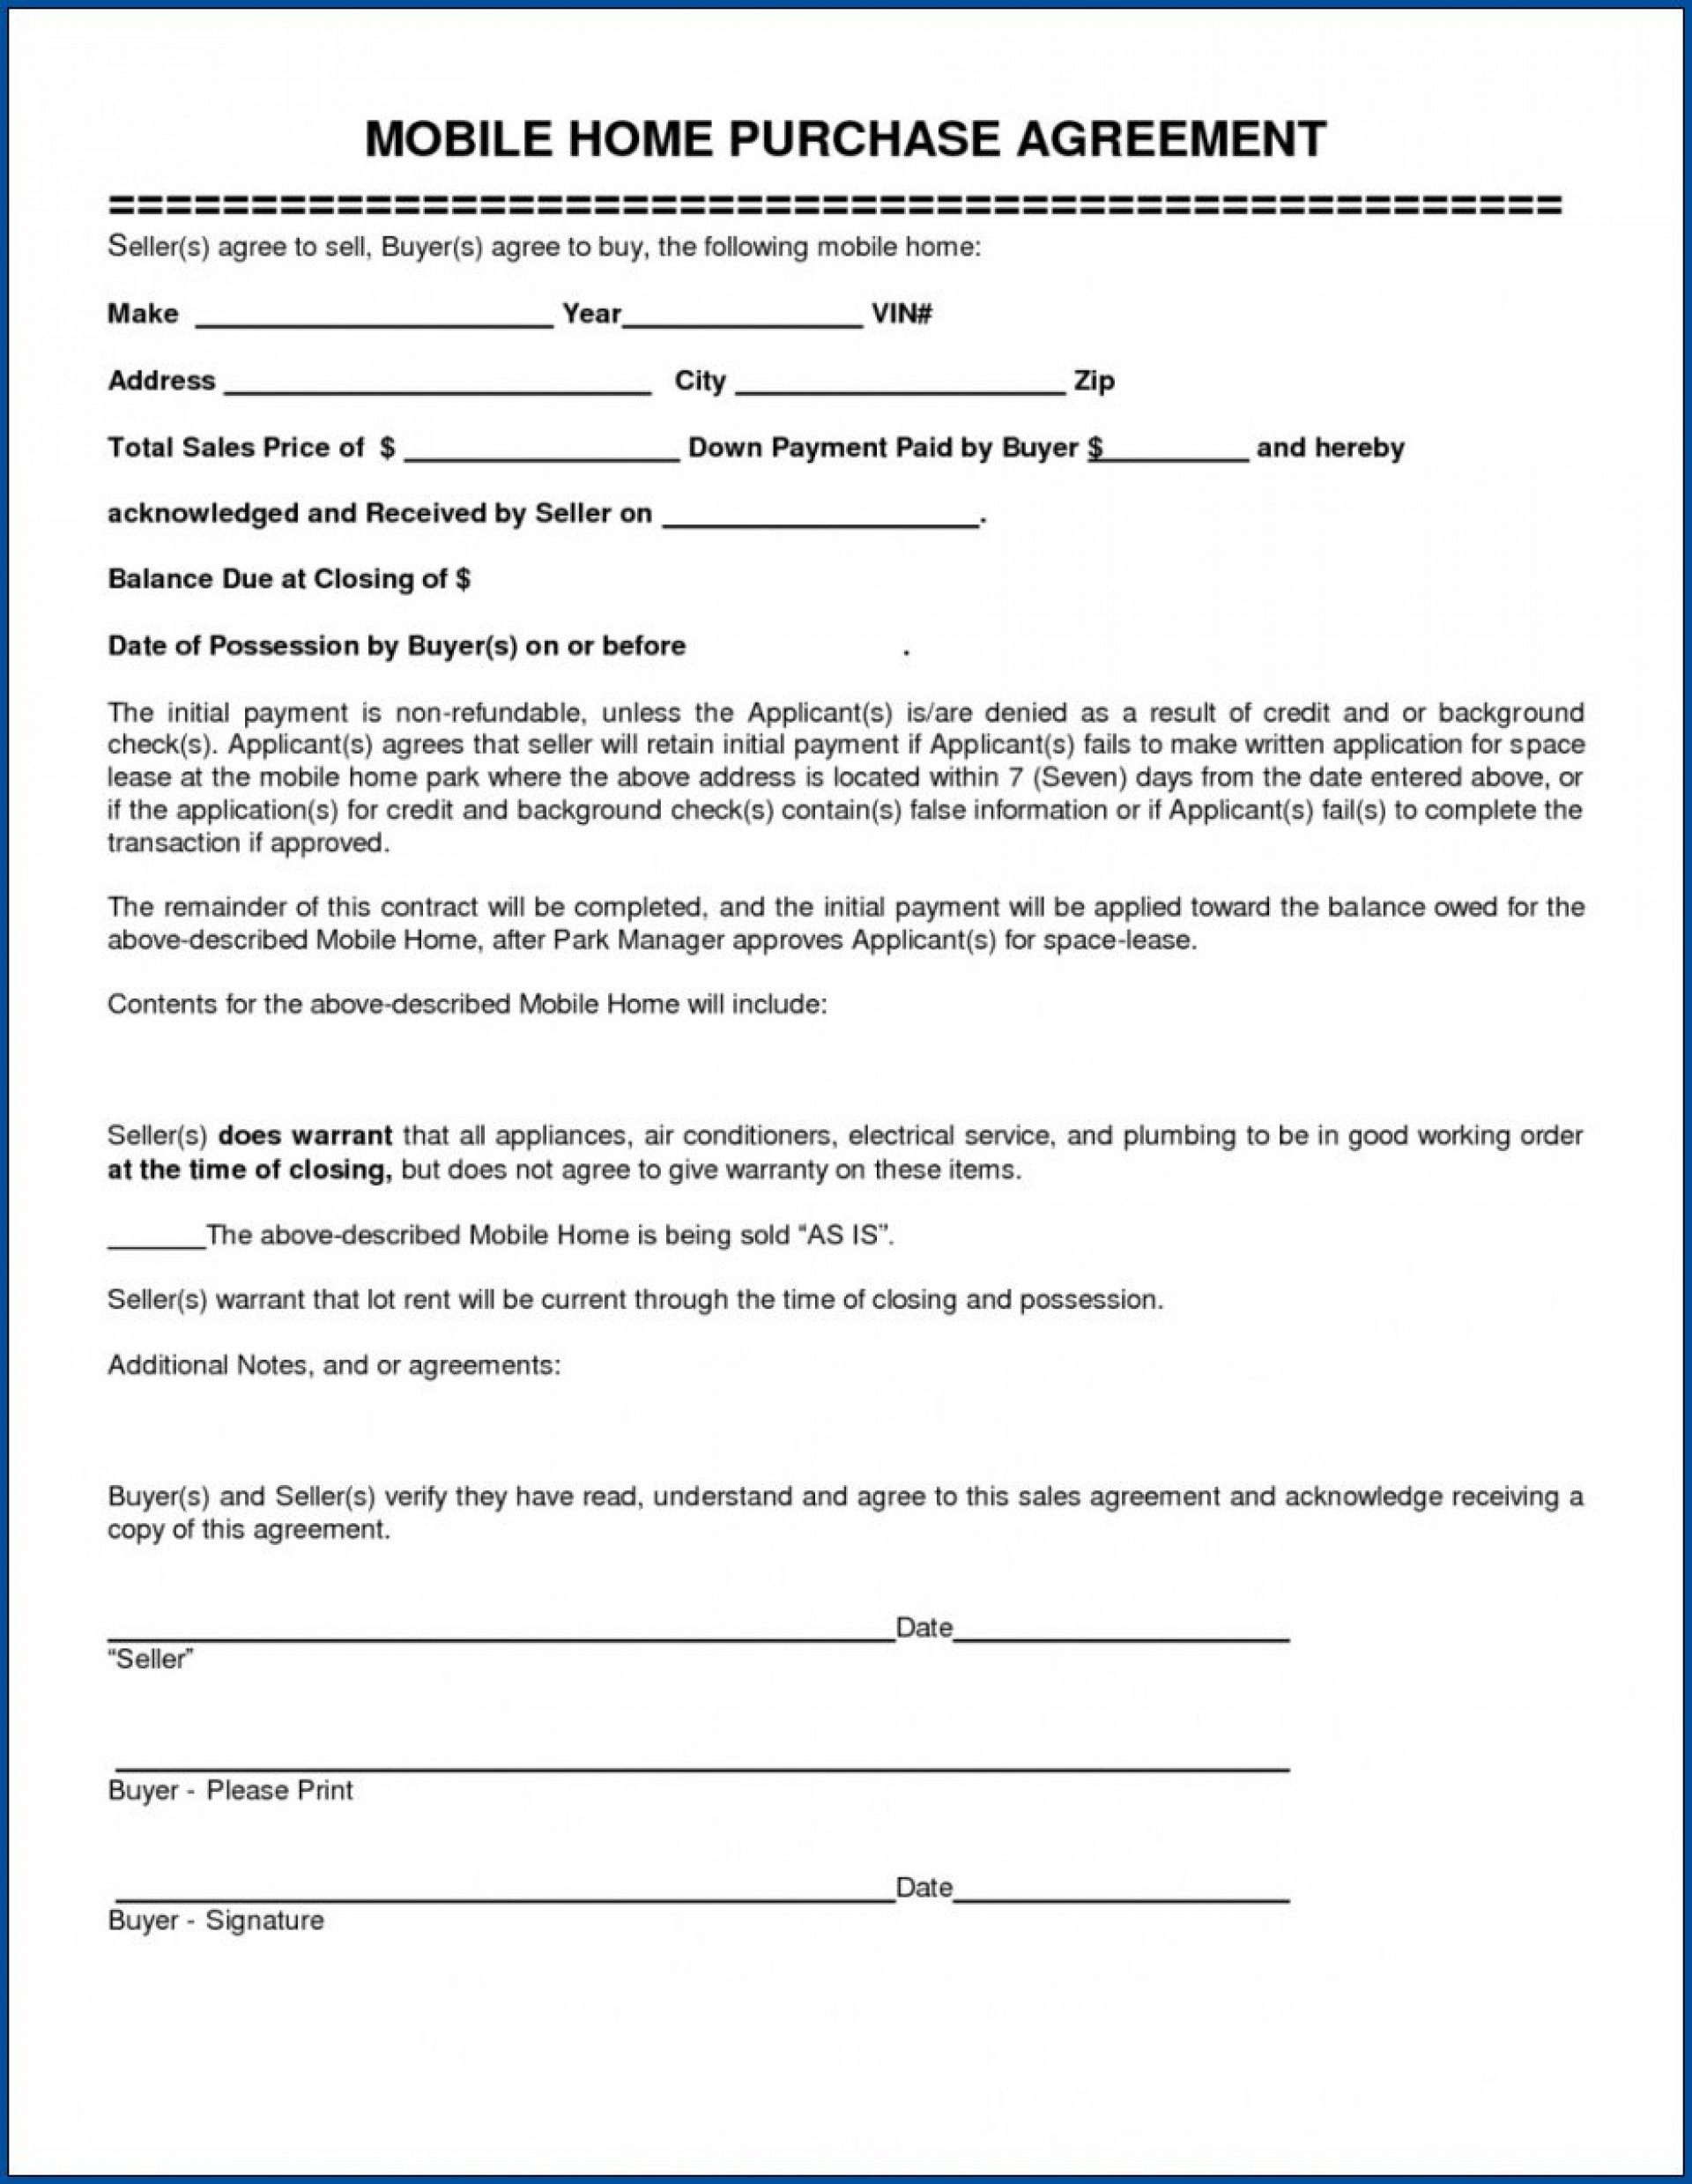 009 Shocking Purchase Agreement Template For Home Image  Mobile1920